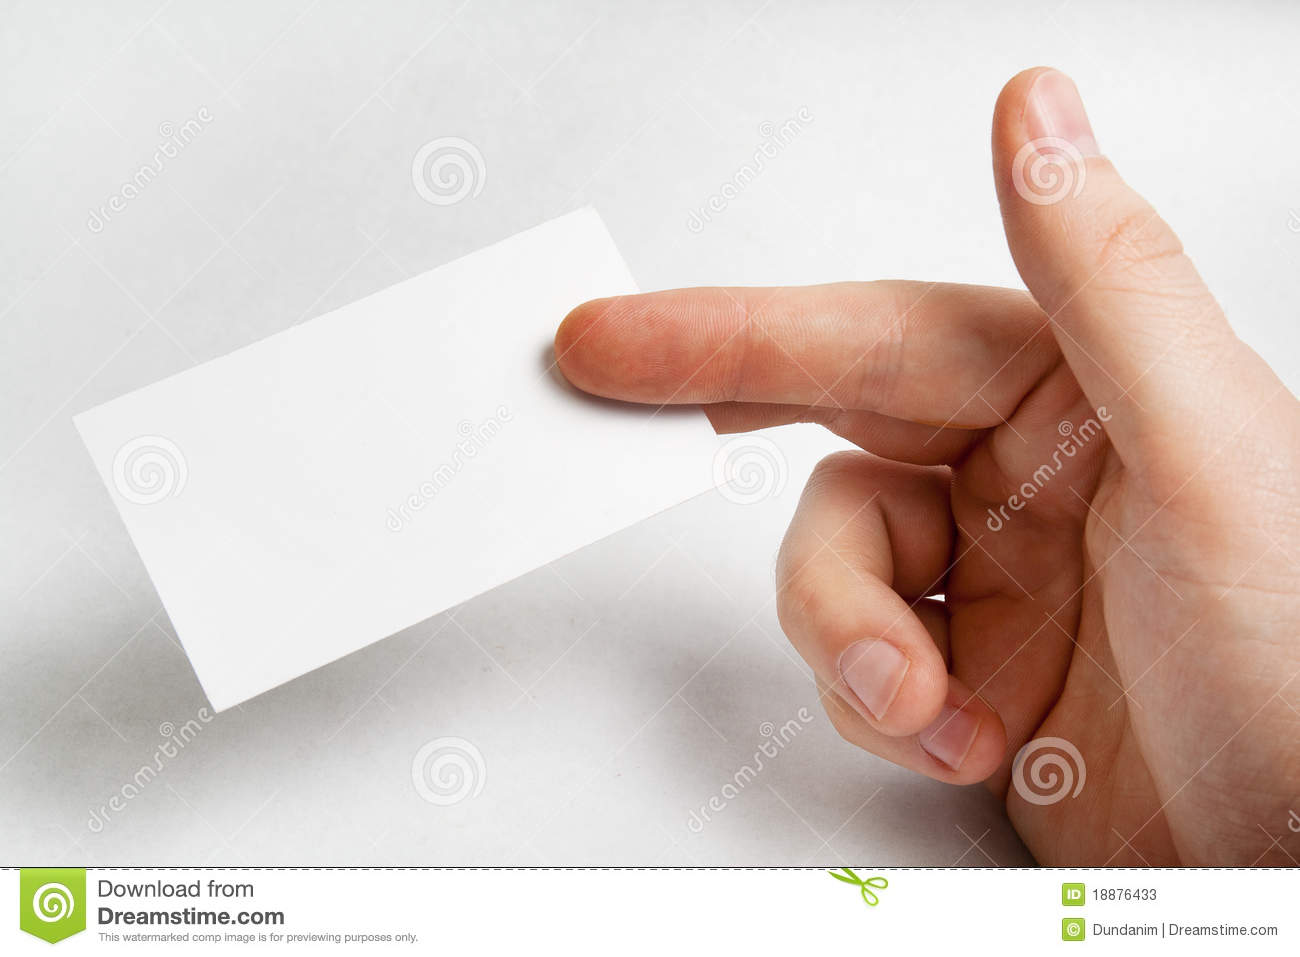 Hand Holding Blank Business Card Stock Photos - Image: 18876433